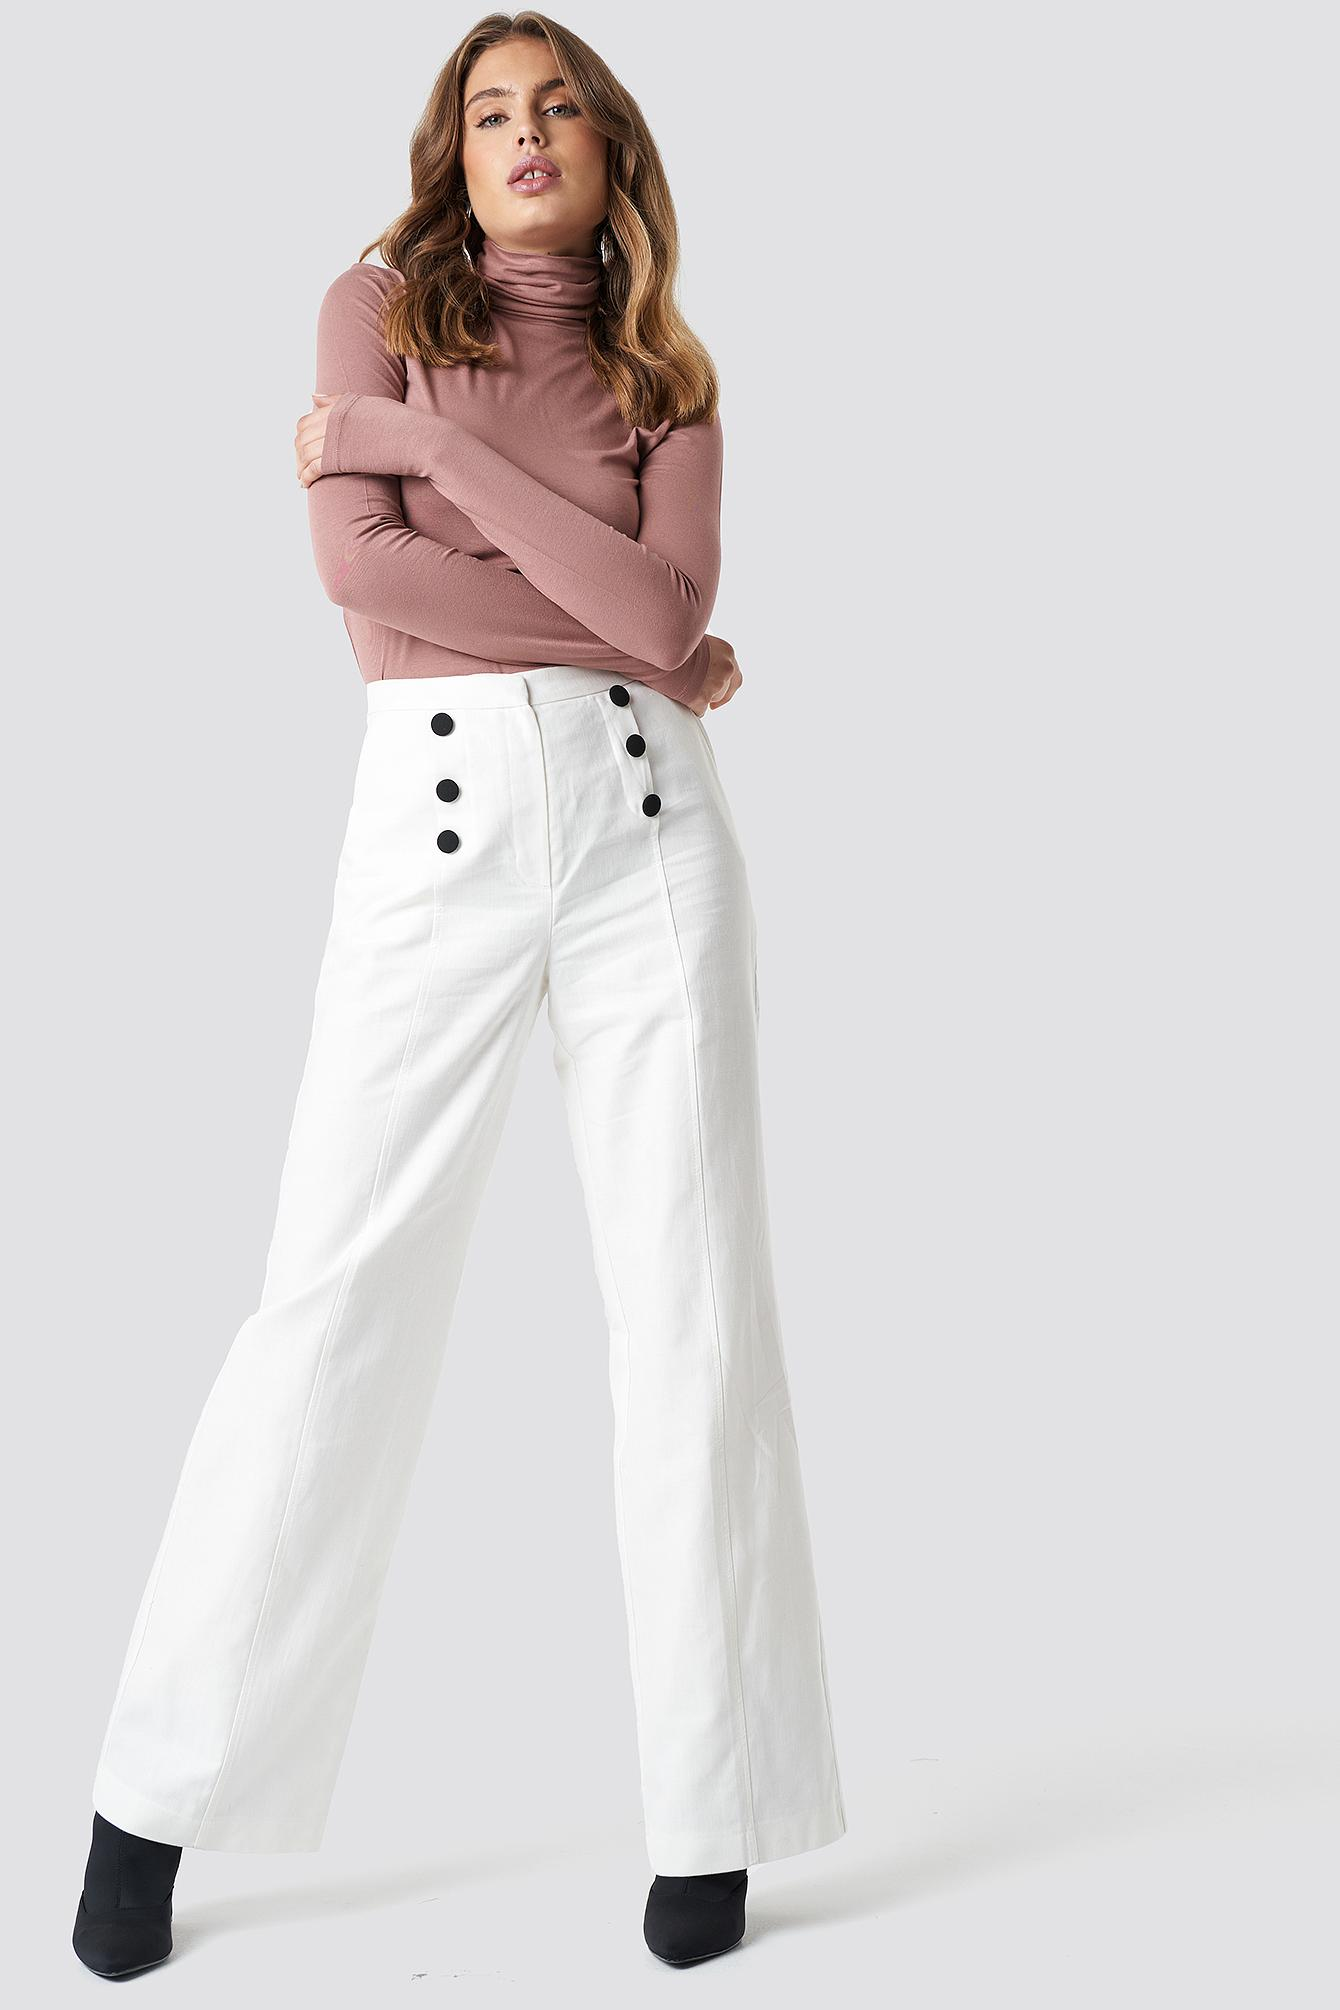 990f19476 Trendyol Front Button Detailed Trousers White in White - Lyst